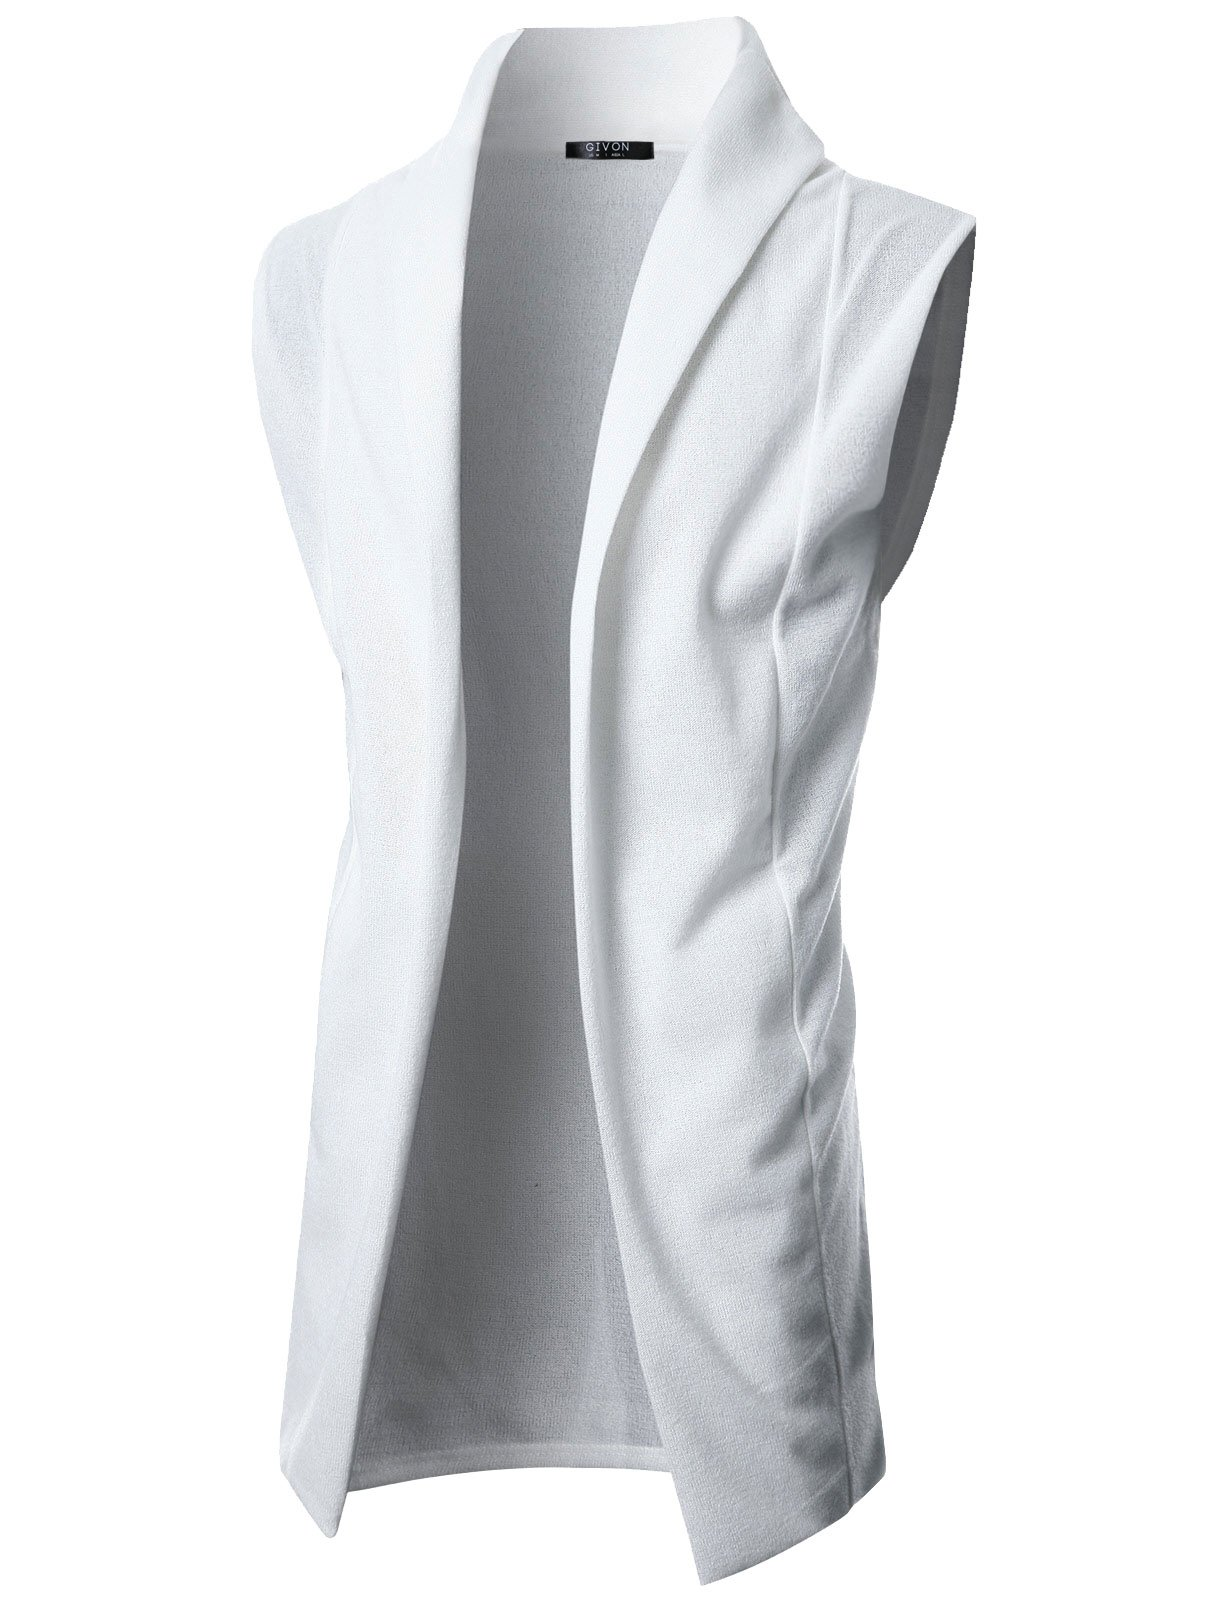 GIVON Mens Sleeveless Draped Open Front Shawl Collar Knitted Long Vest/DCC031-IVORY-L